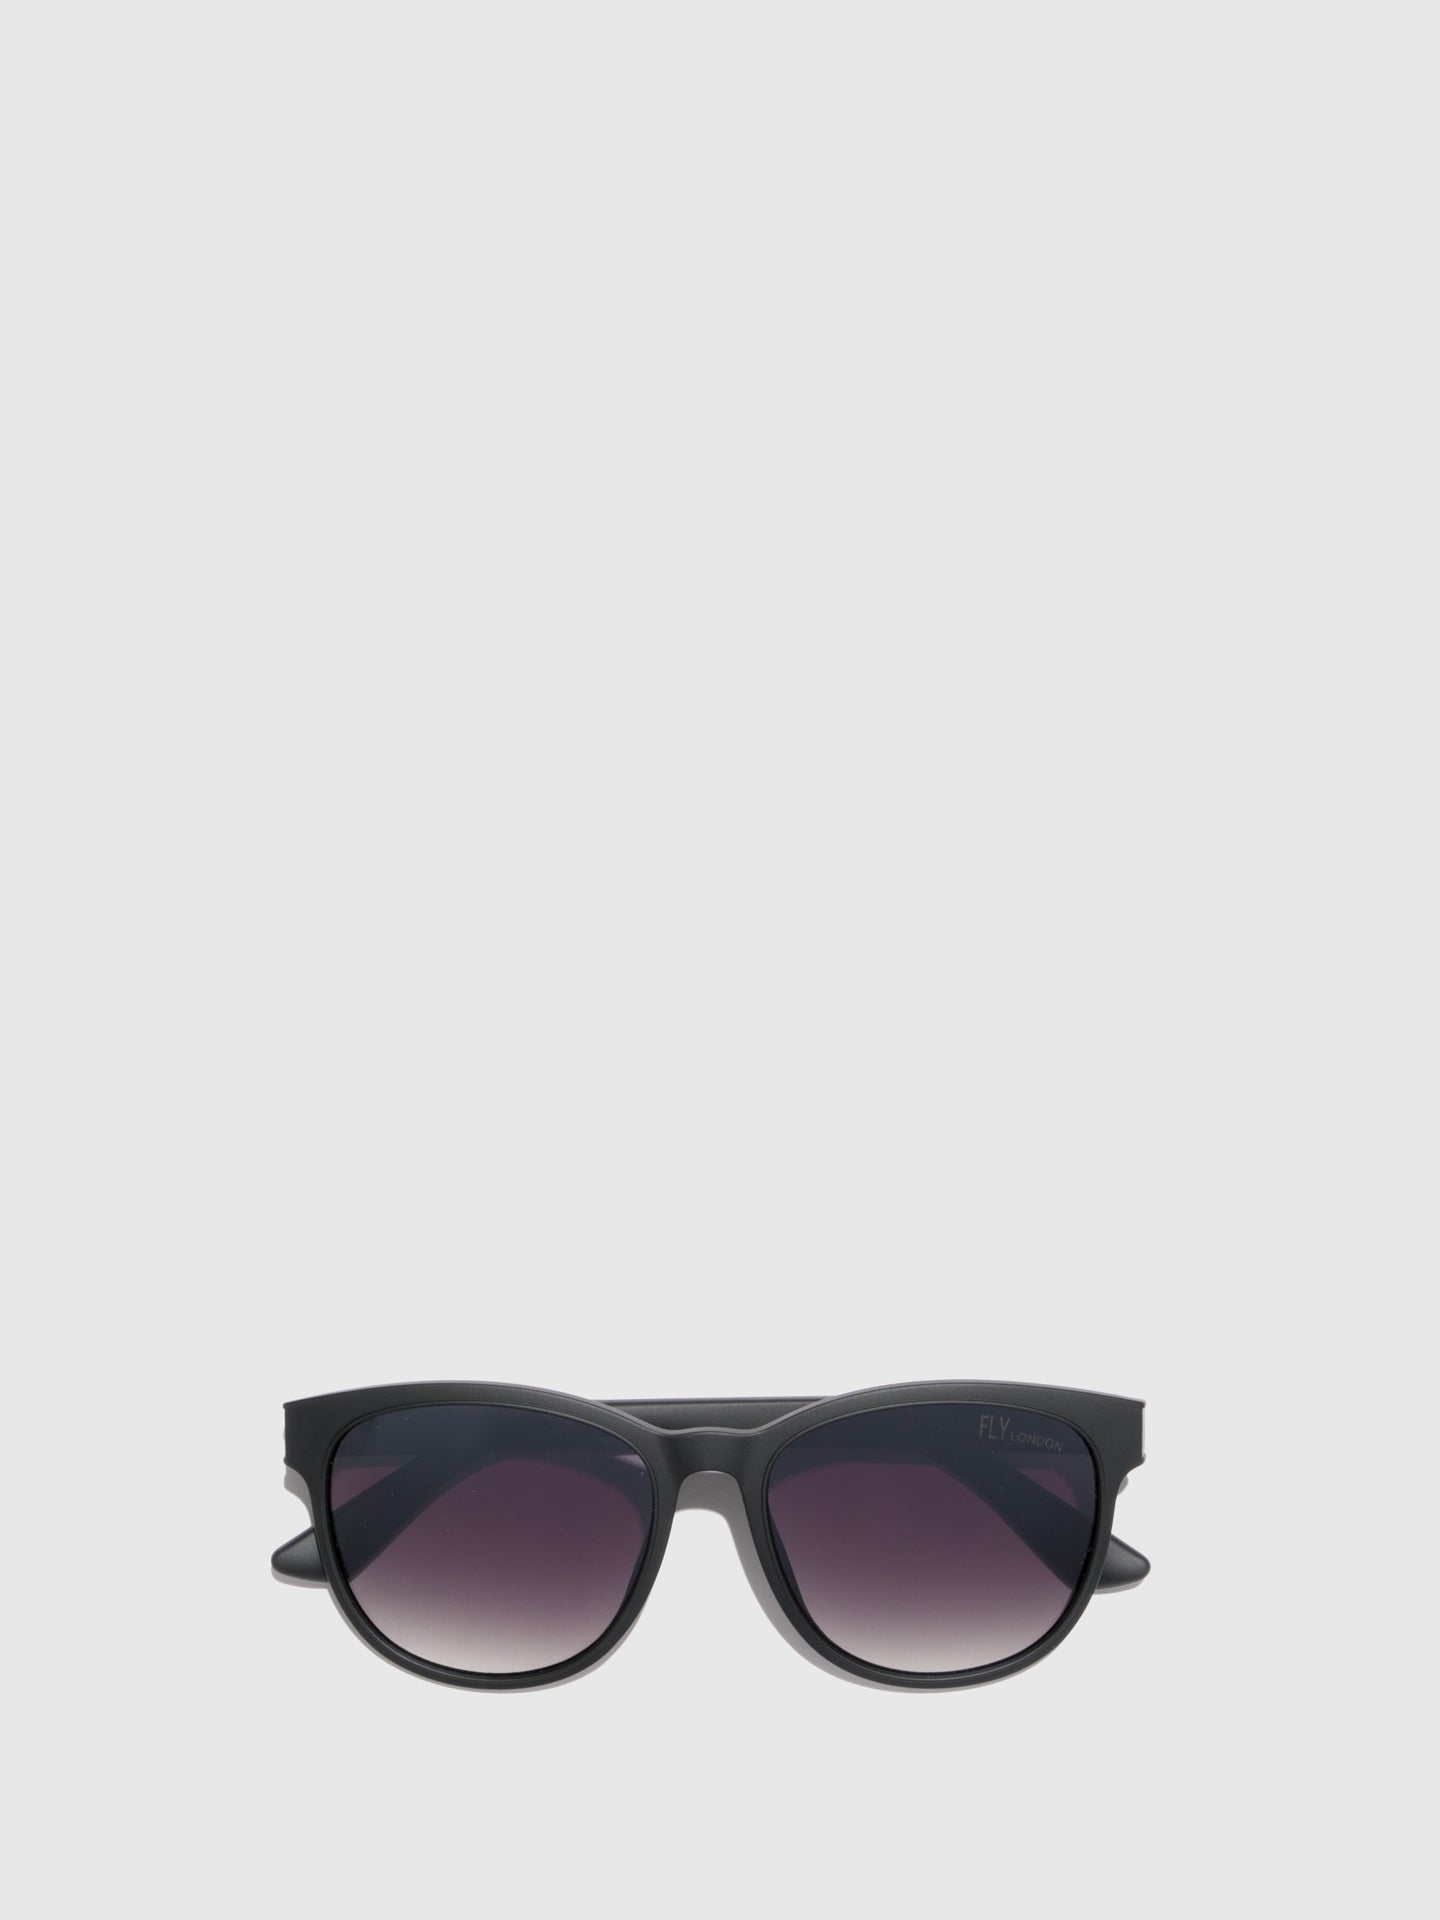 Fly London Black Wayfarer Style Sunglasses